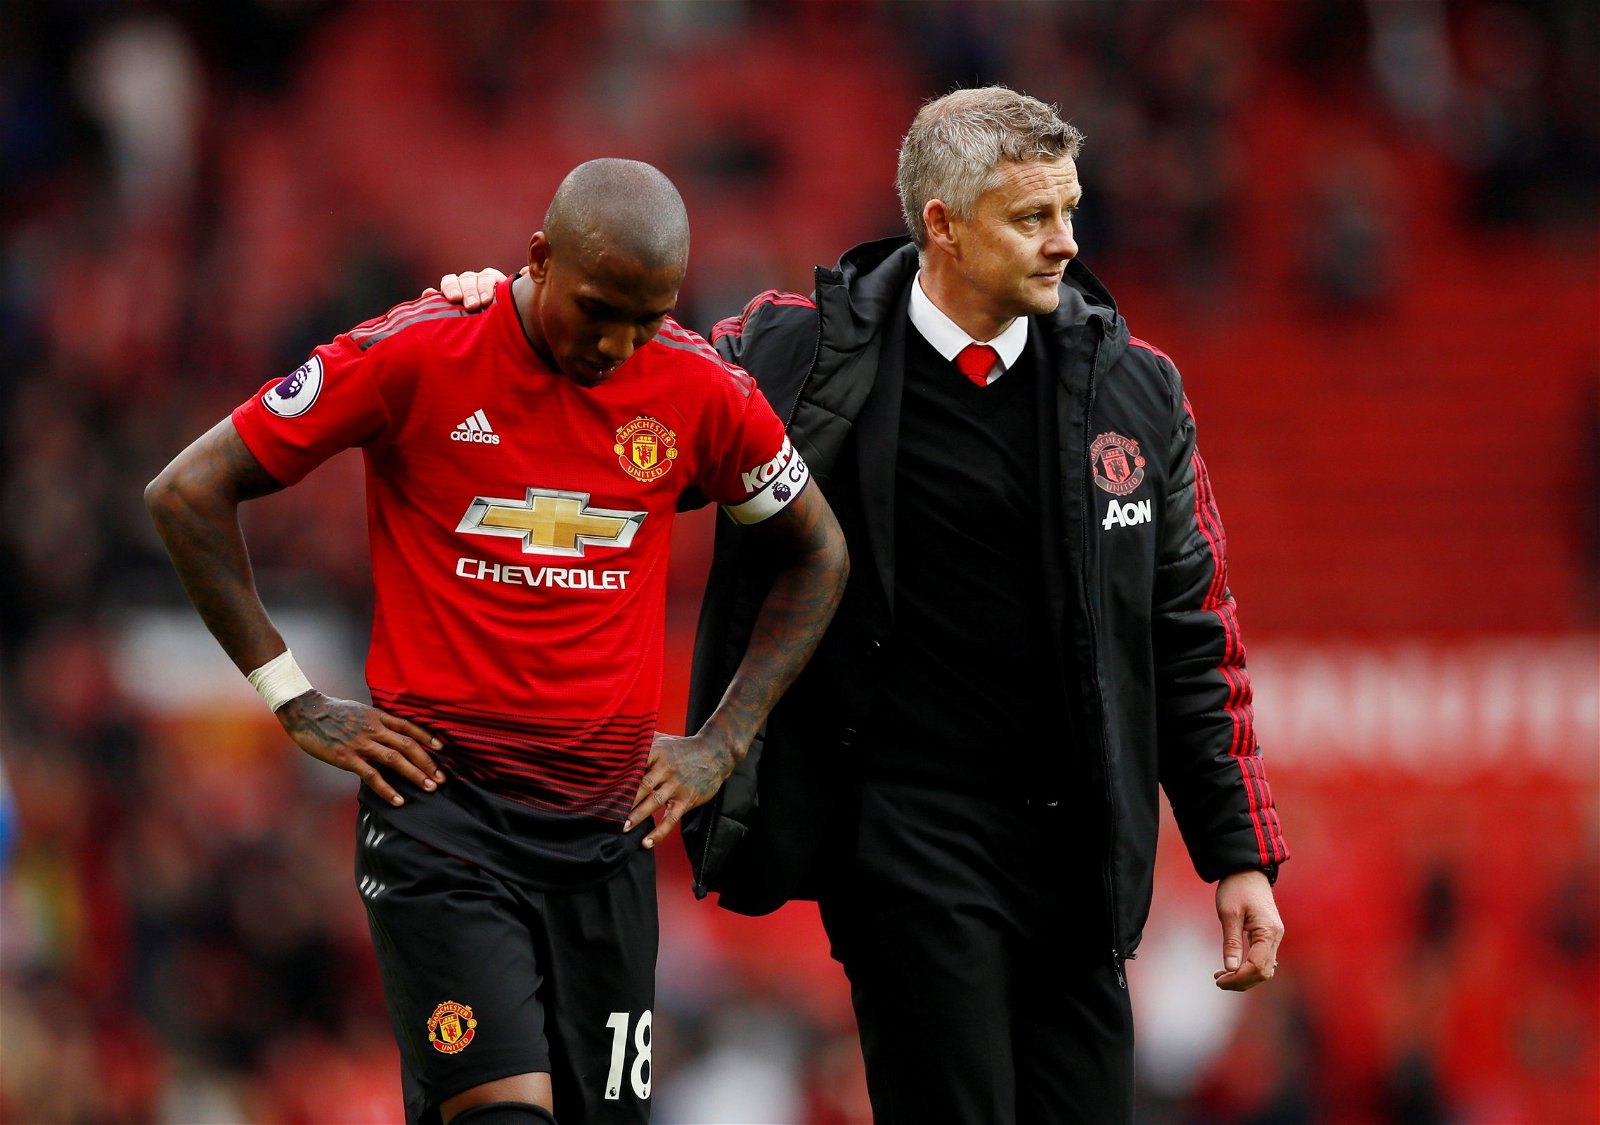 Manchester United manager Ole Gunnar Solskjaer consoles Ashley Young after draw vs Chelsea